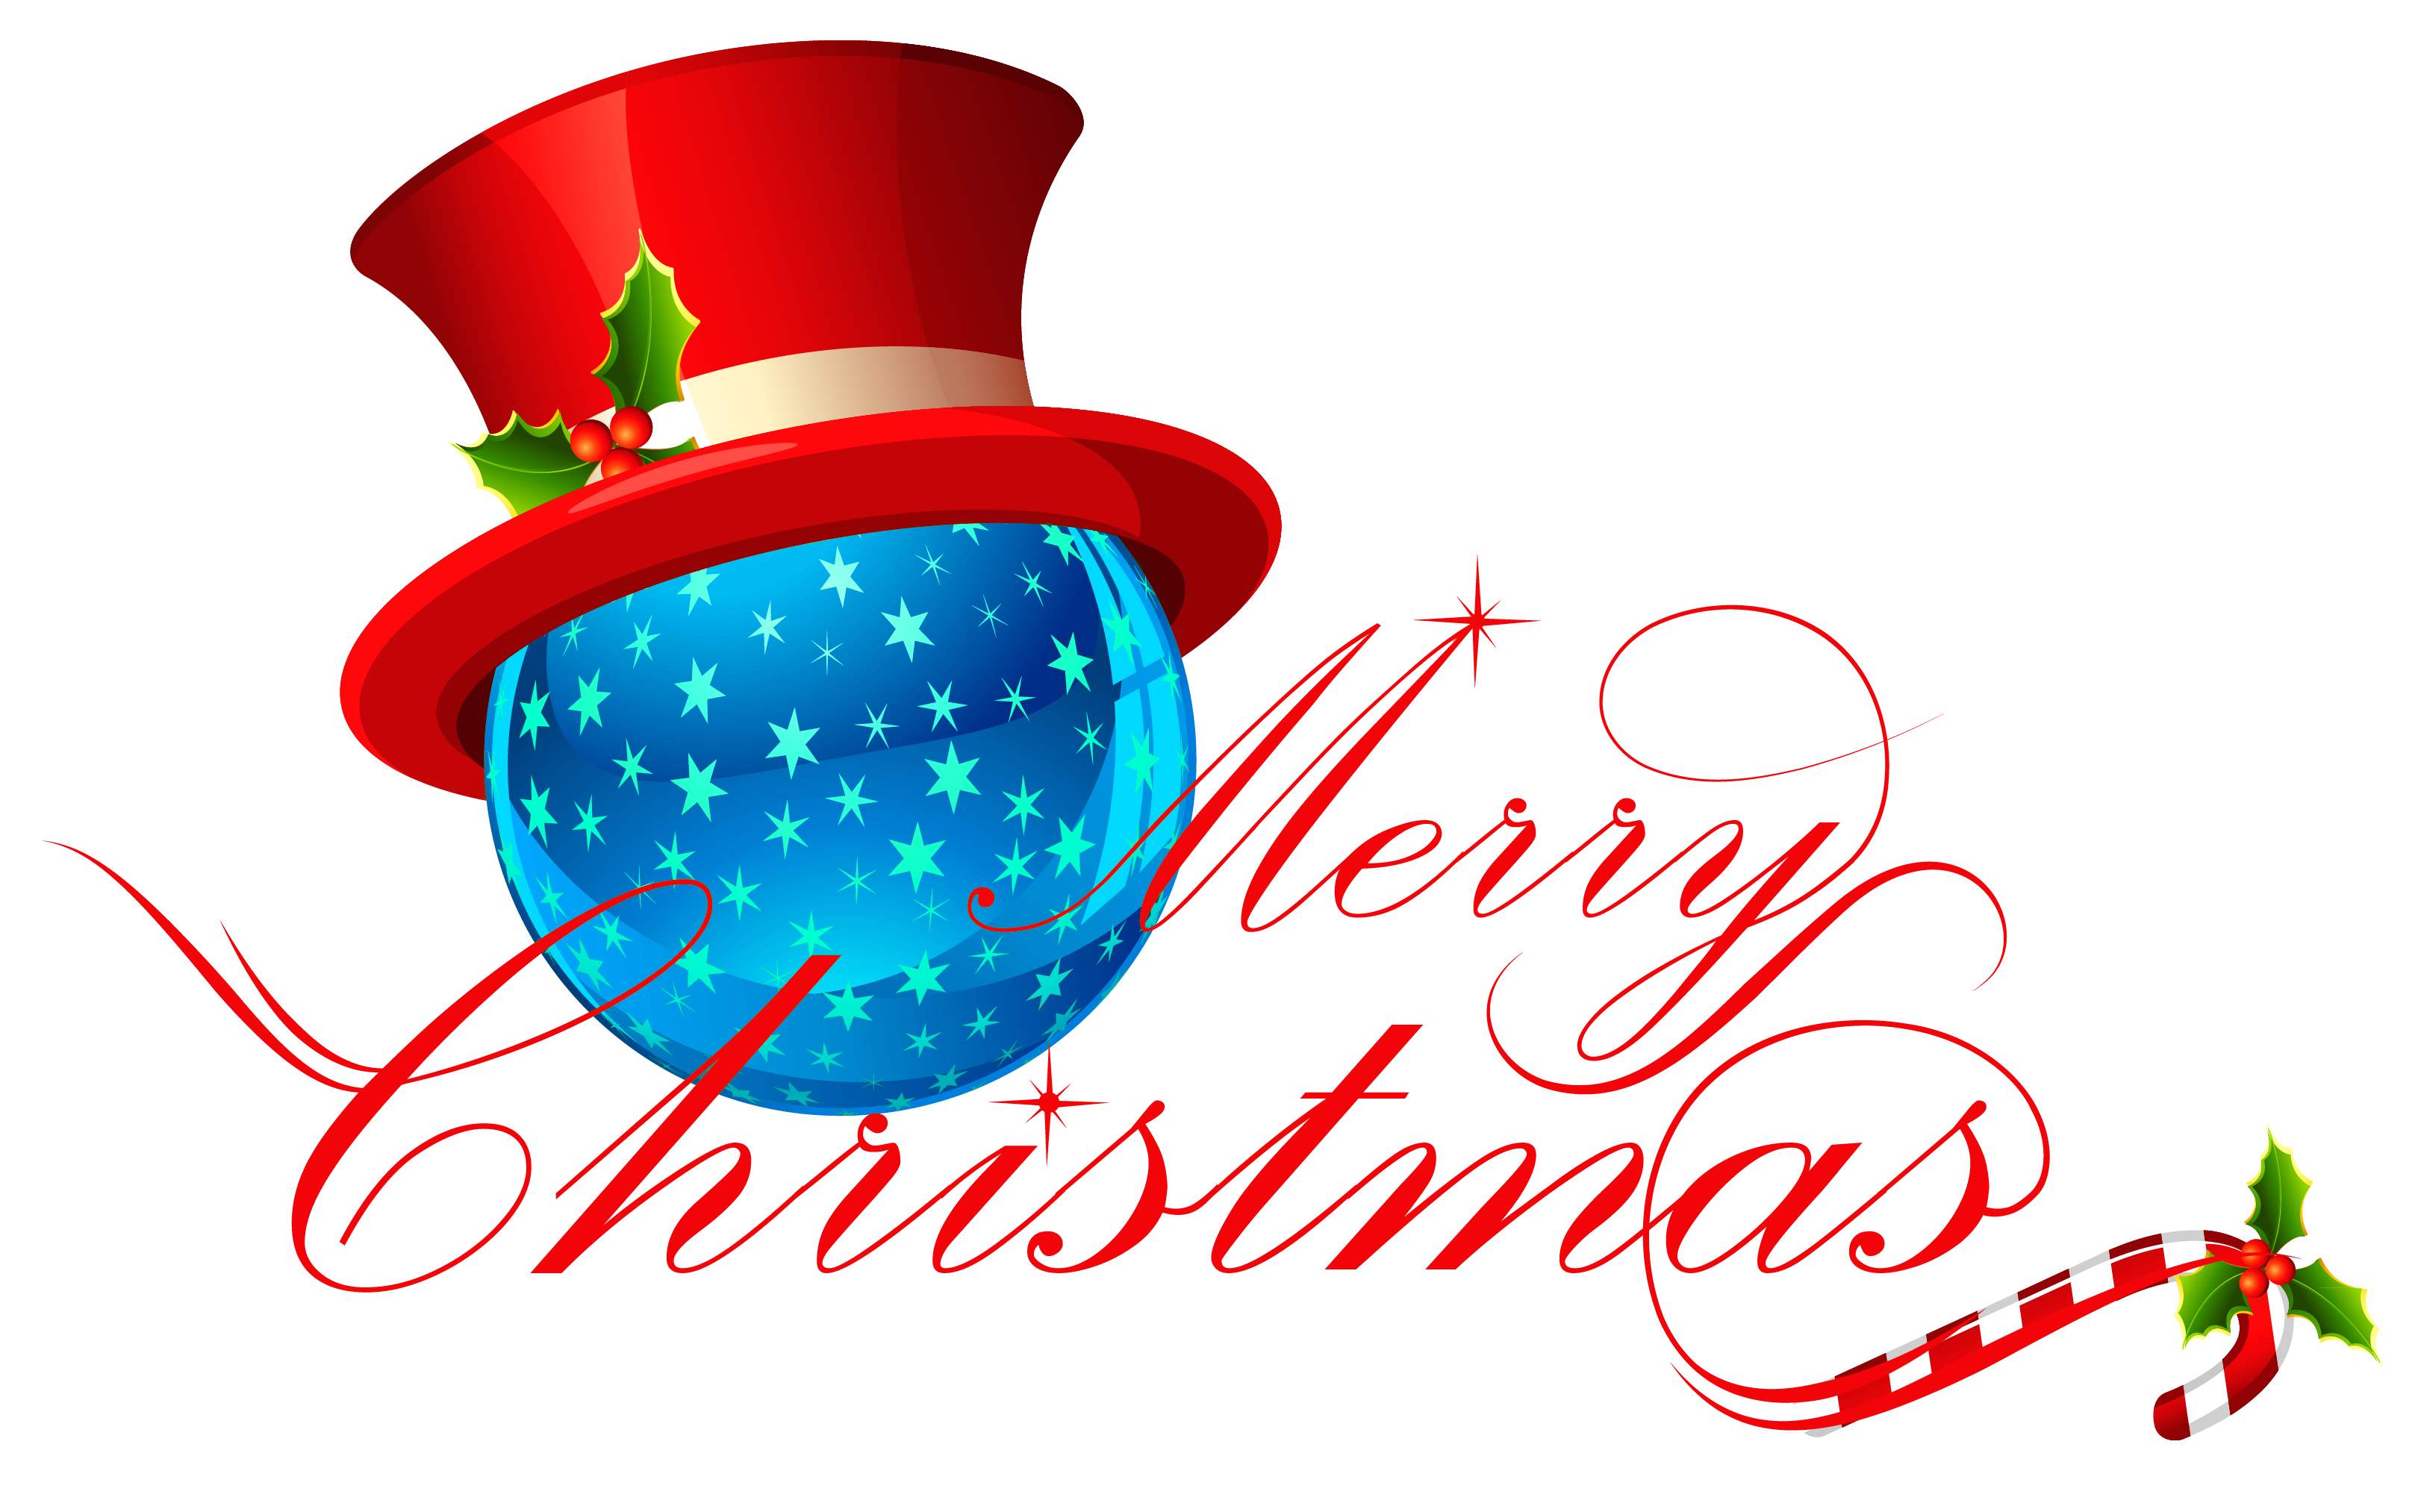 Merry christmas clipart round. Transparent with blue ornament